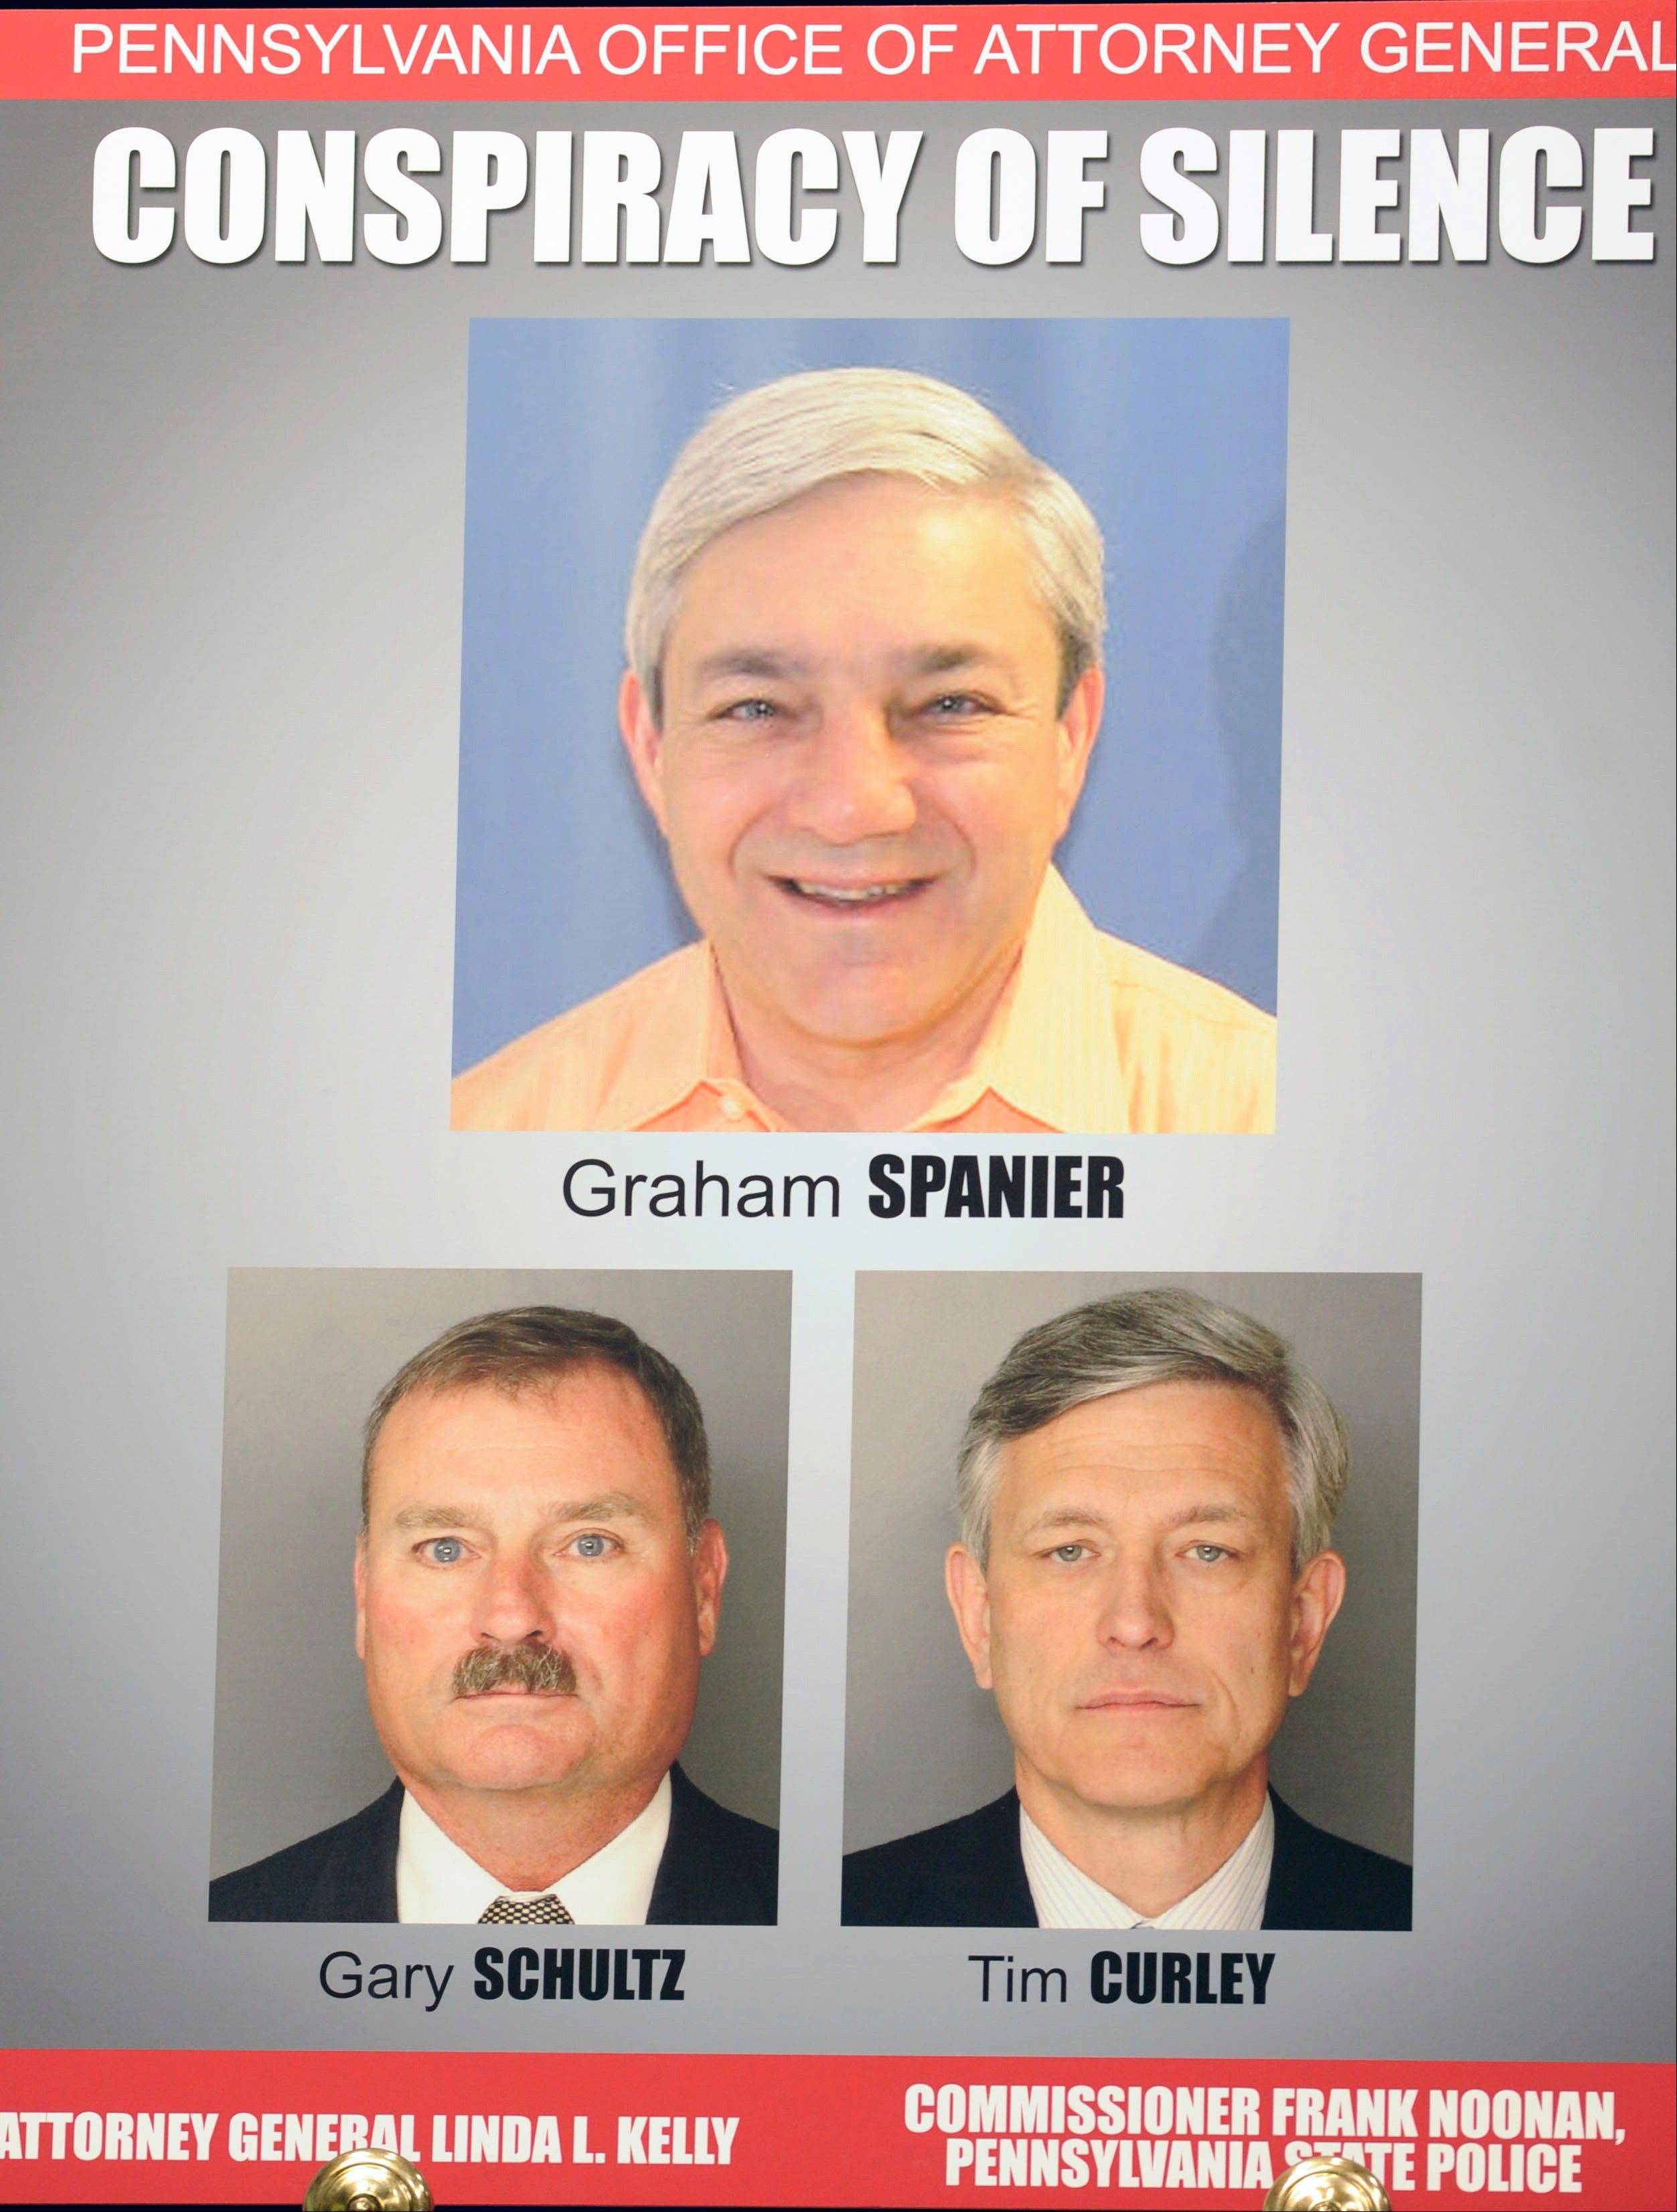 The Pennsylvania Office of Attorney General shows a poster with images of former Penn State President Graham Spanier, top, retired university vice president Gary Schultz, bottom left, and former athletic director Timothy Curley. The question of what exact situation the three men were discussing in a Feb. 27, 2001, email will go before a judge Monday to determine whether Spanier, Schultz and Curley must face trial on charges they covered up an allegation that Jerry Sandusky was sexually preying on boys.